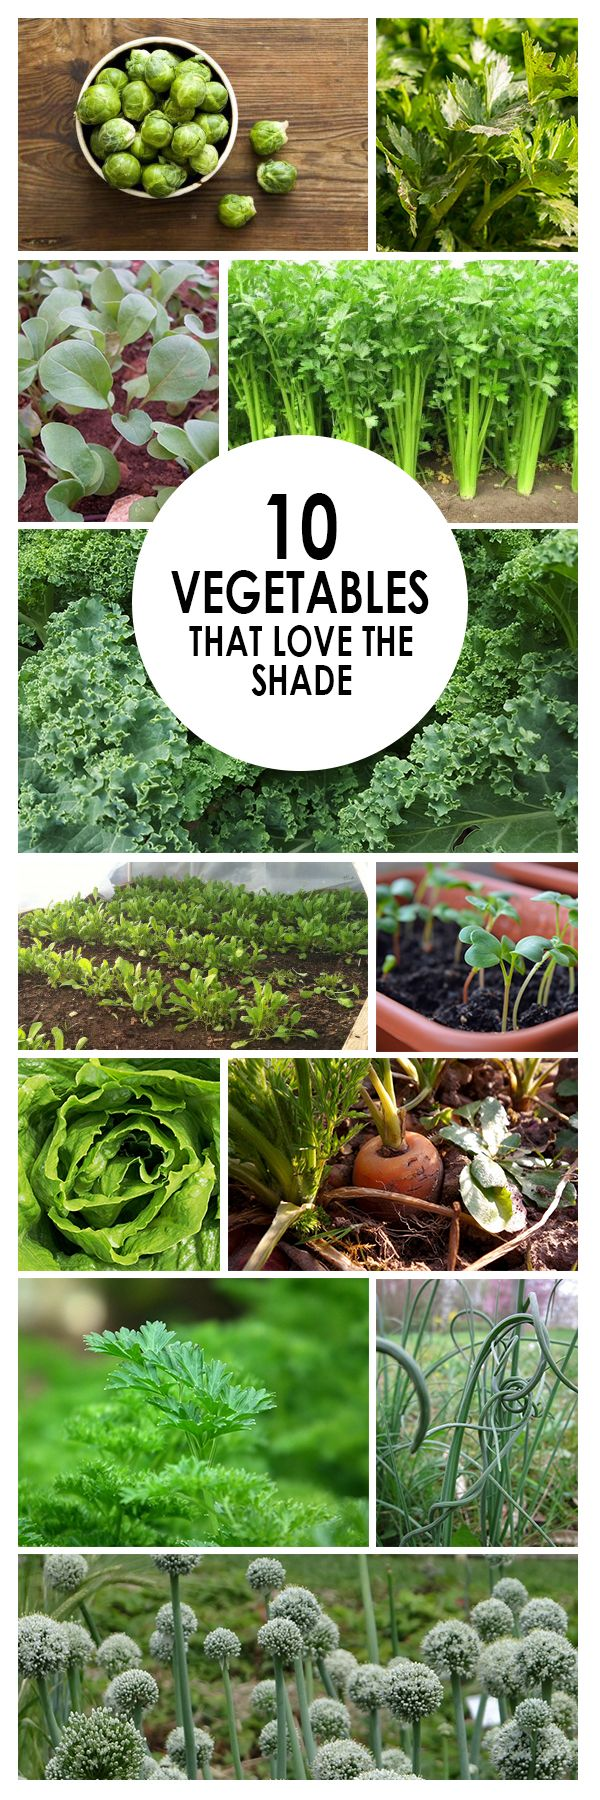 10 Vegetables That Love The Shade Gardens Vegetable 400 x 300